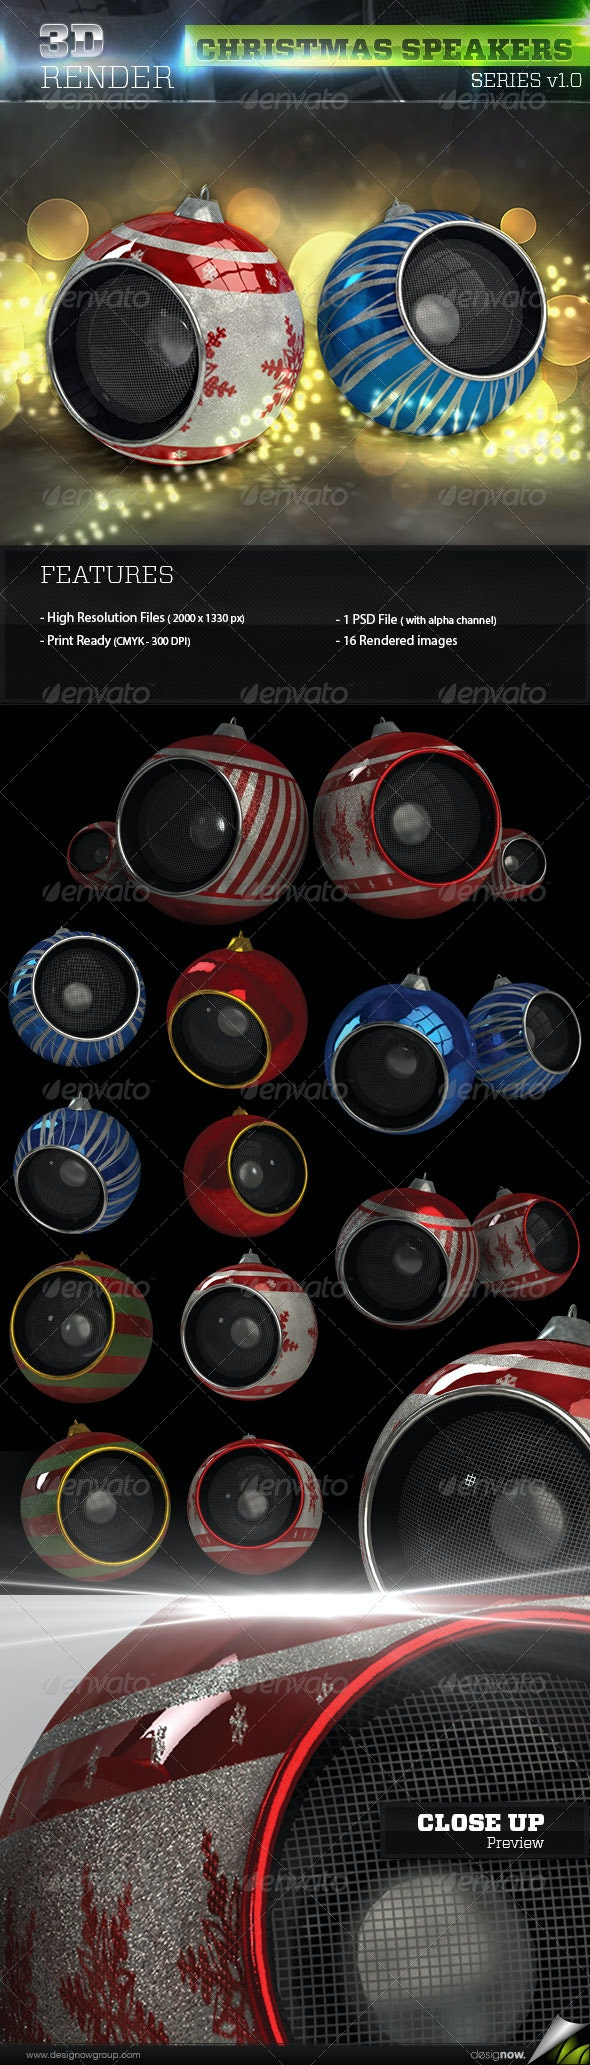 Christmas Speaker - Objects 3D Renders